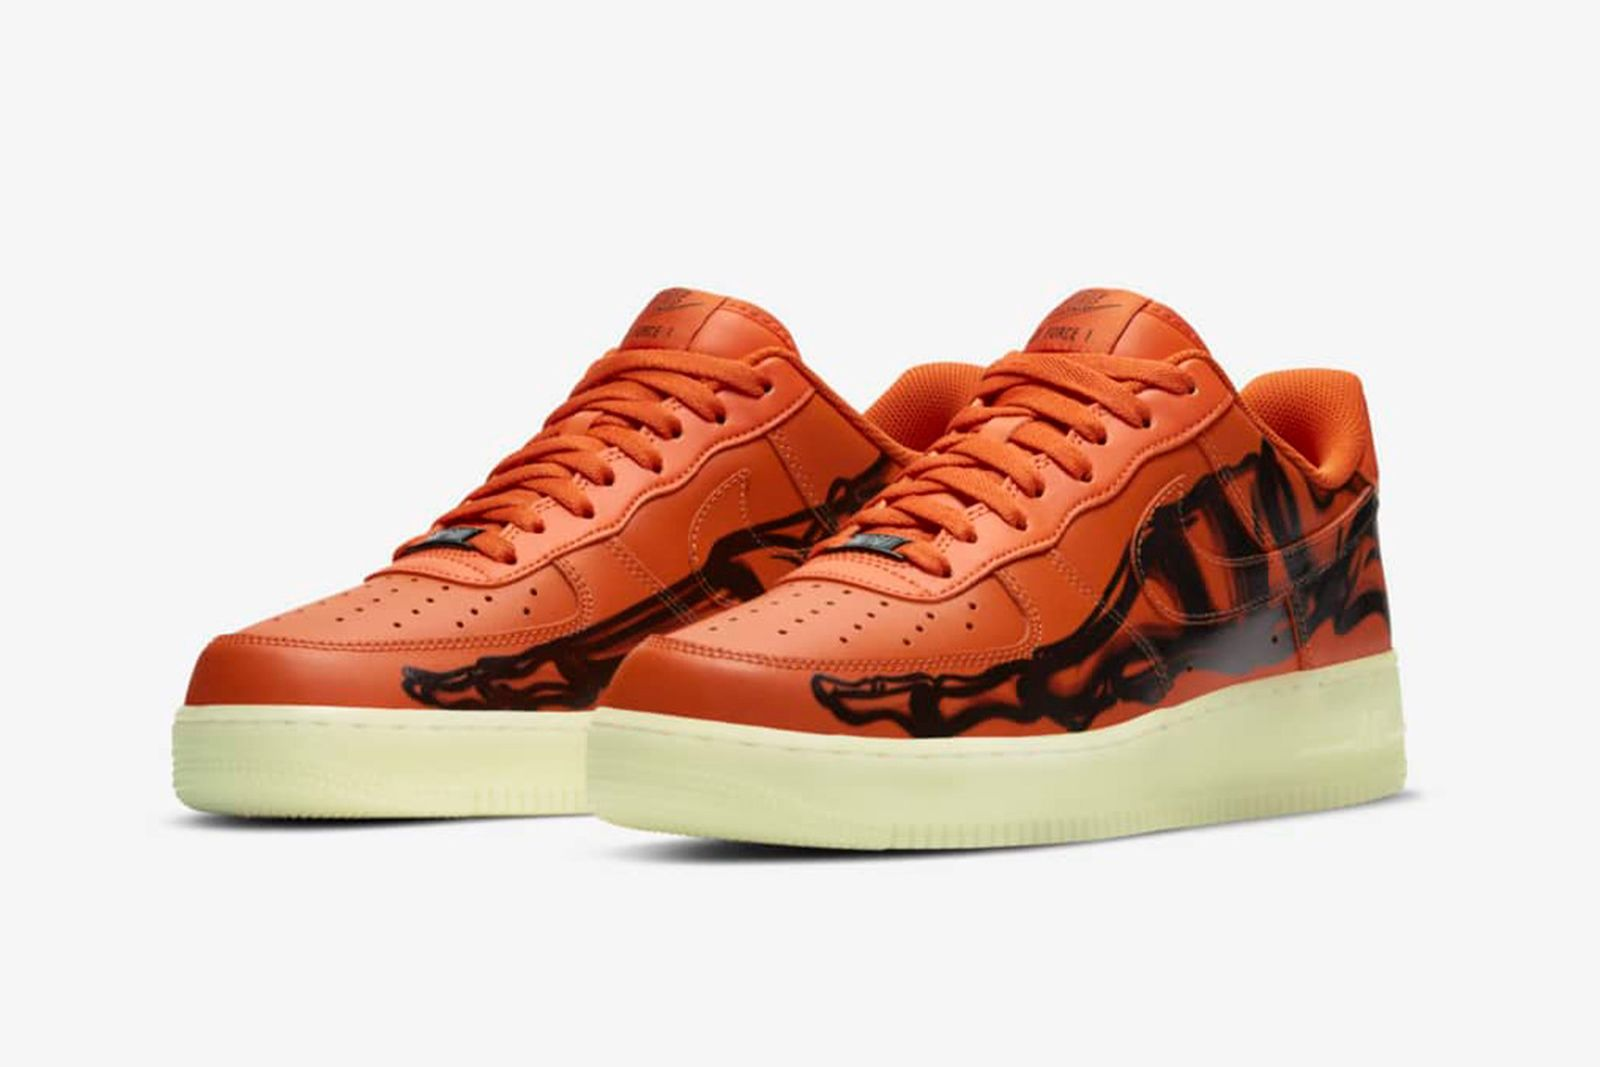 nike-air-force-1-orange-skeleton-release-date-price-05